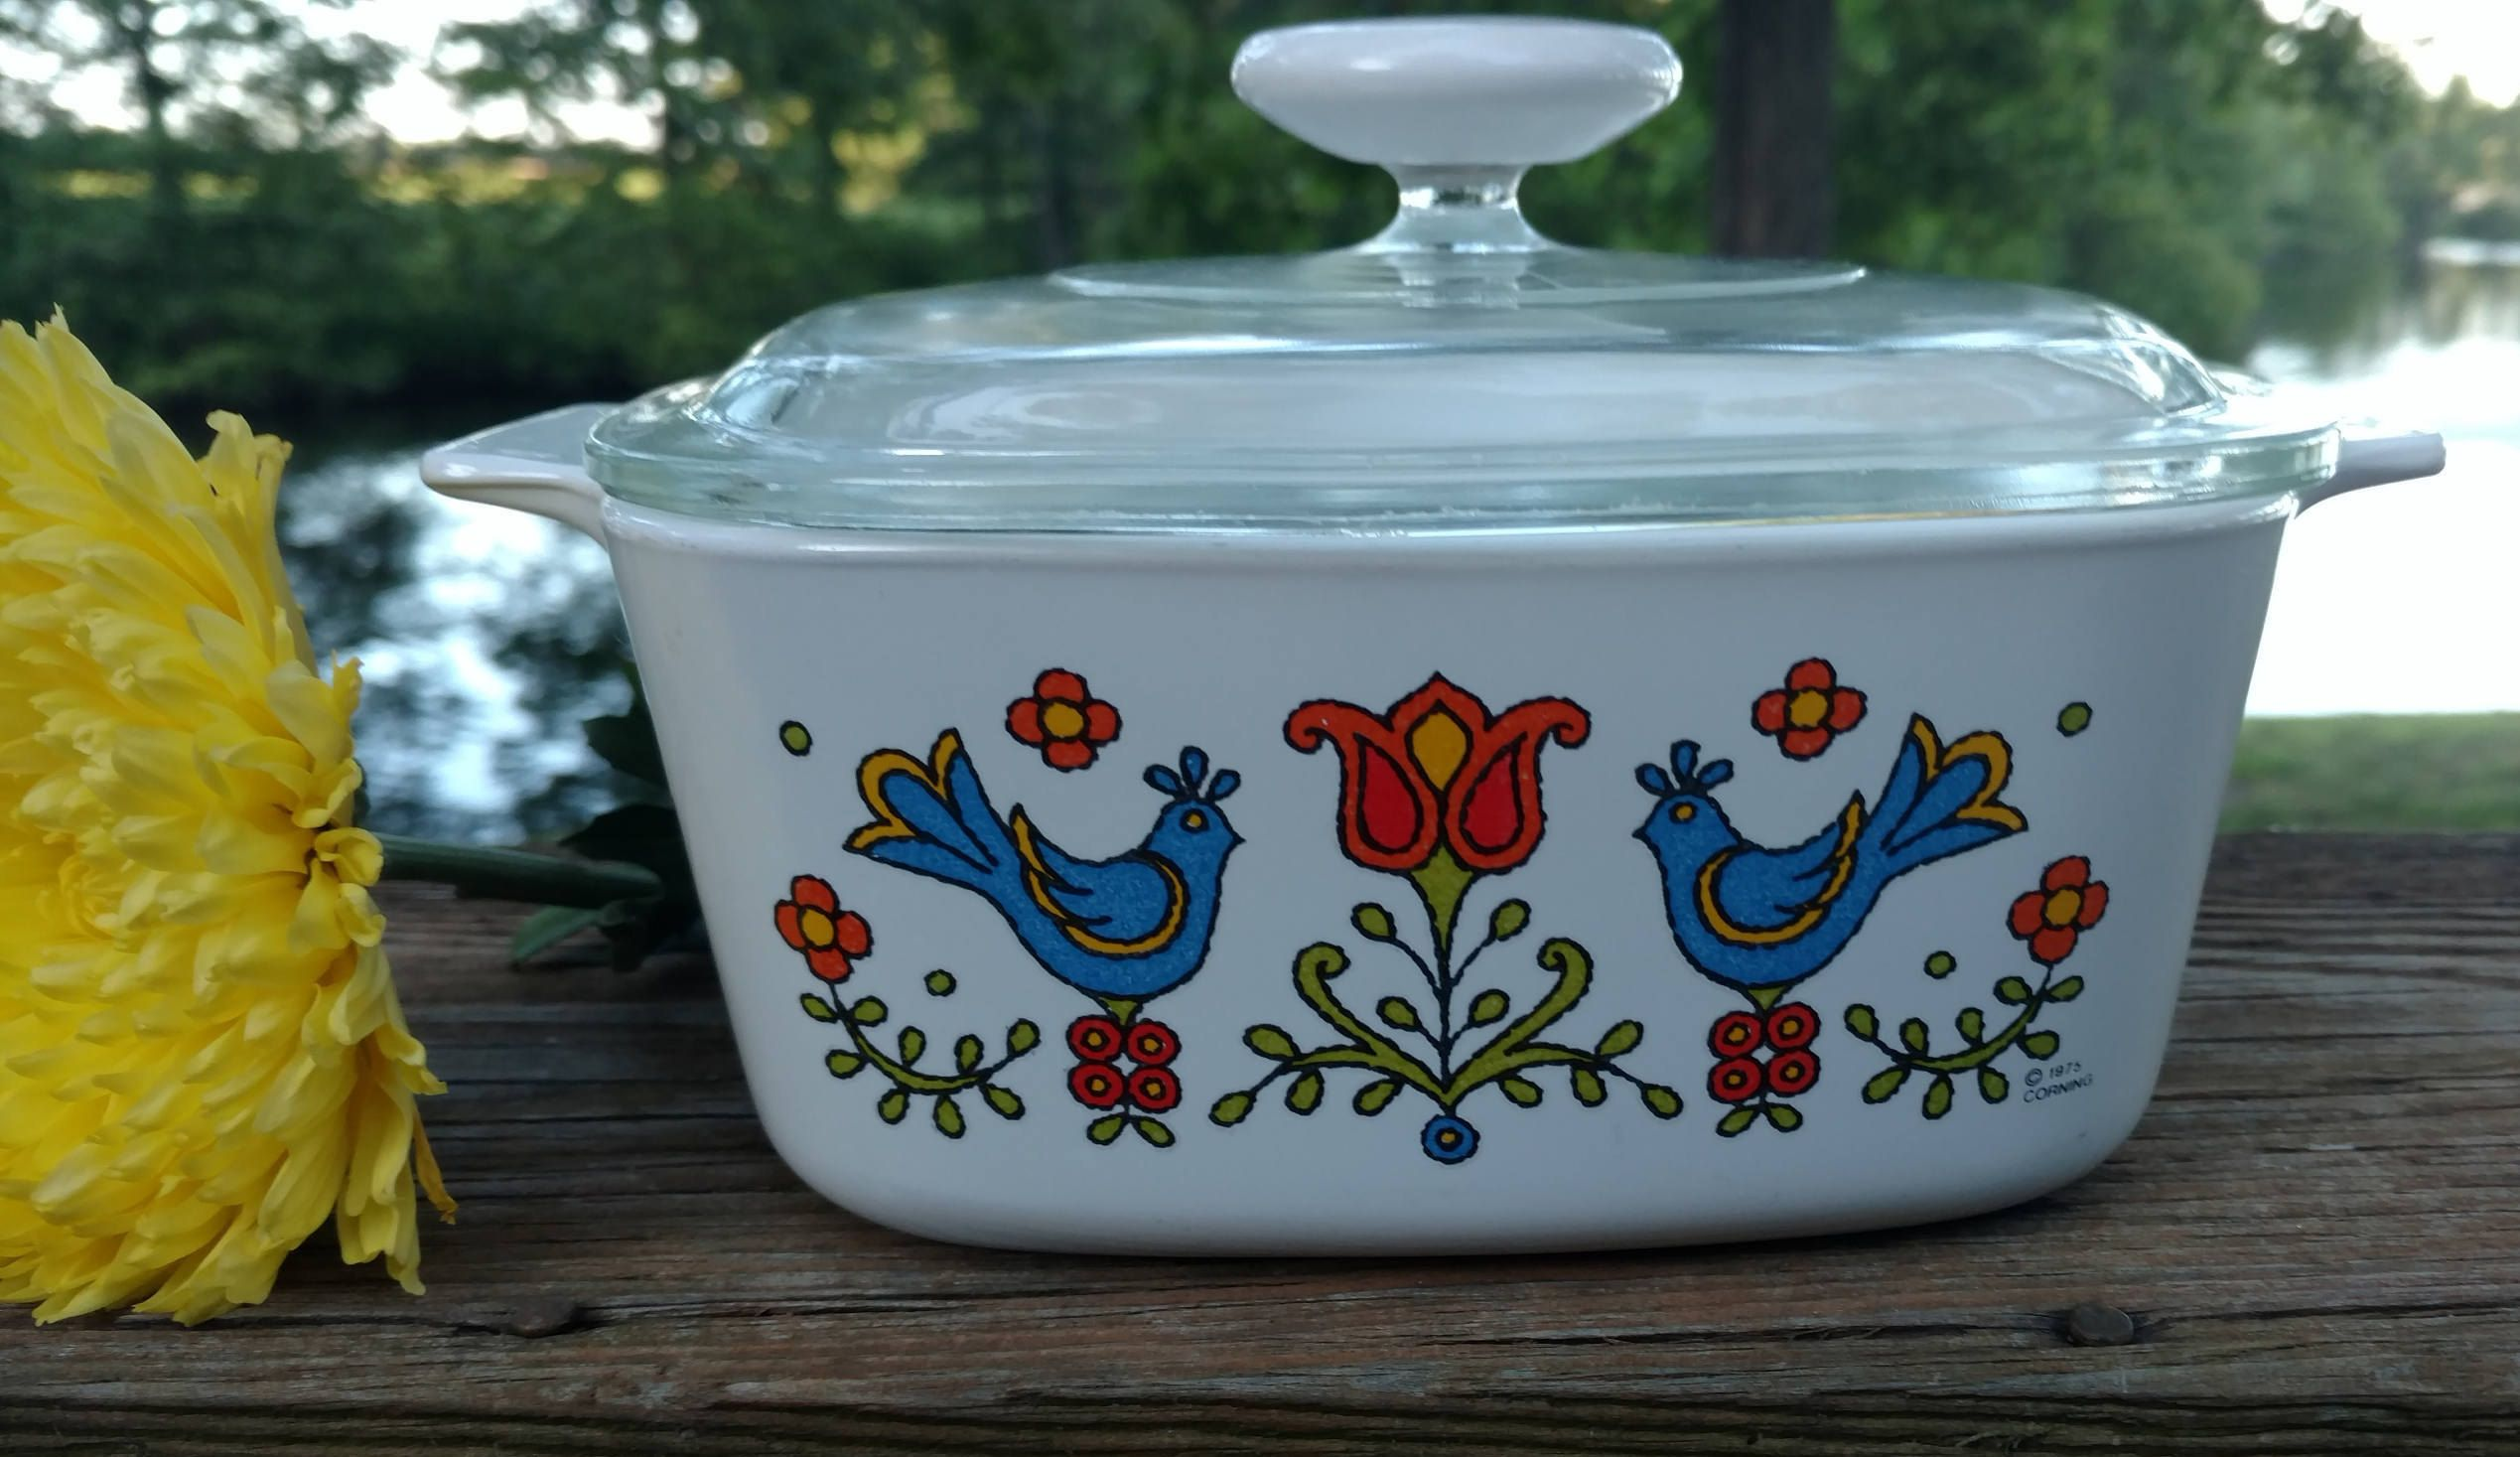 1975 Country Festival Corning Ware Dish And Lid P 7 C With White